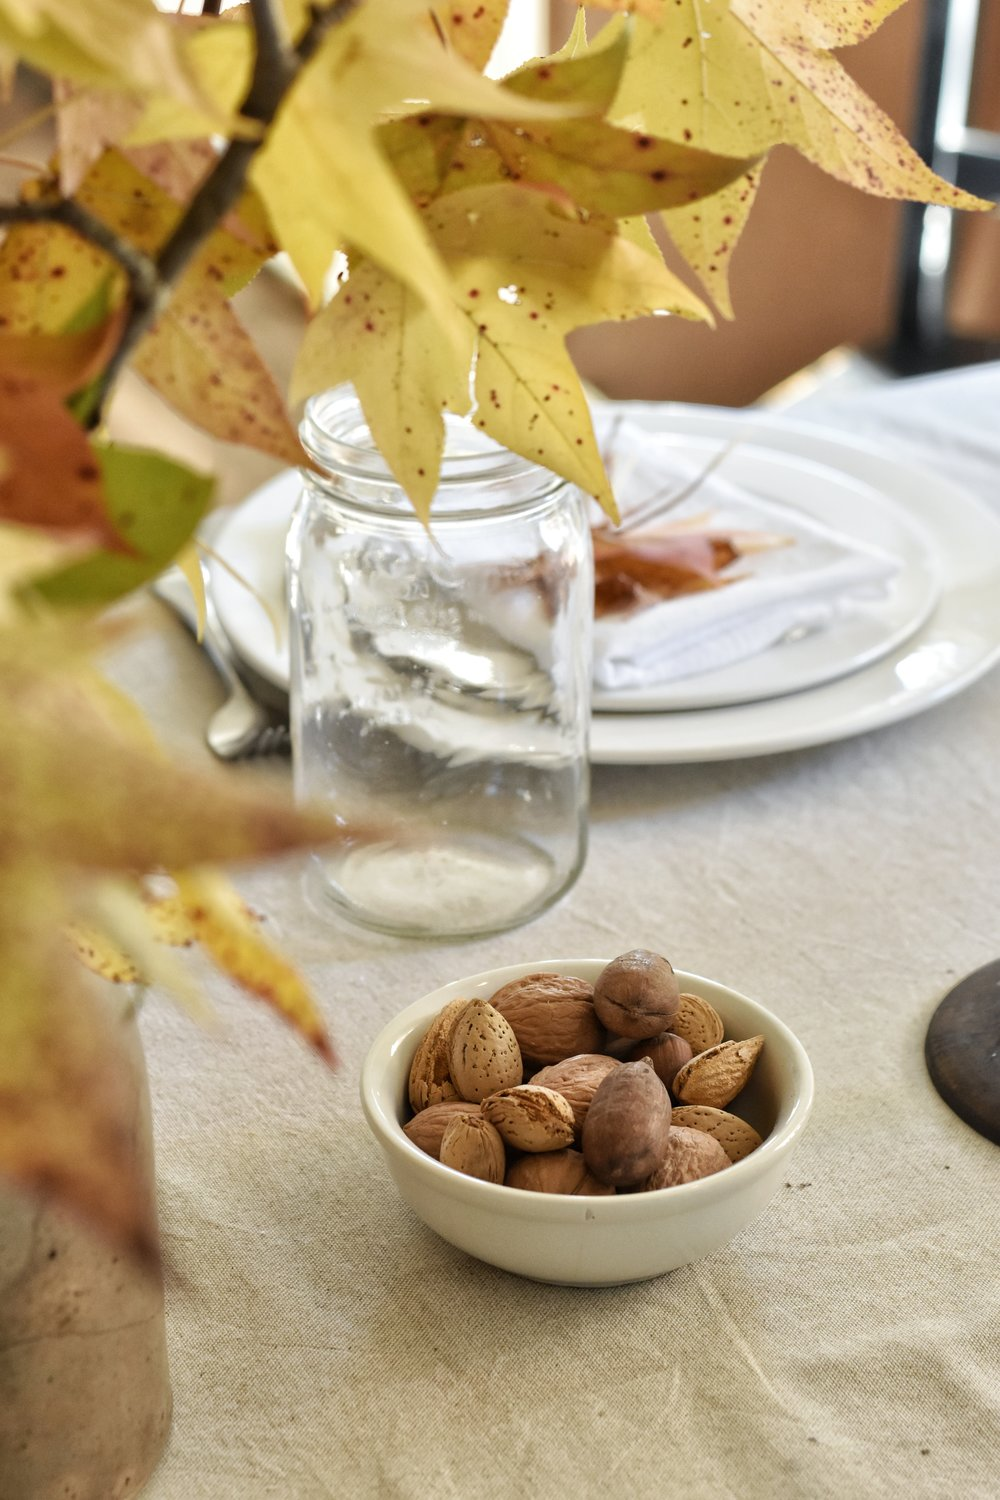 This is a beautiful and very easy Thanksgiving table setting idea. Easy and simple with just some items from nature, candlesticks and nuts.